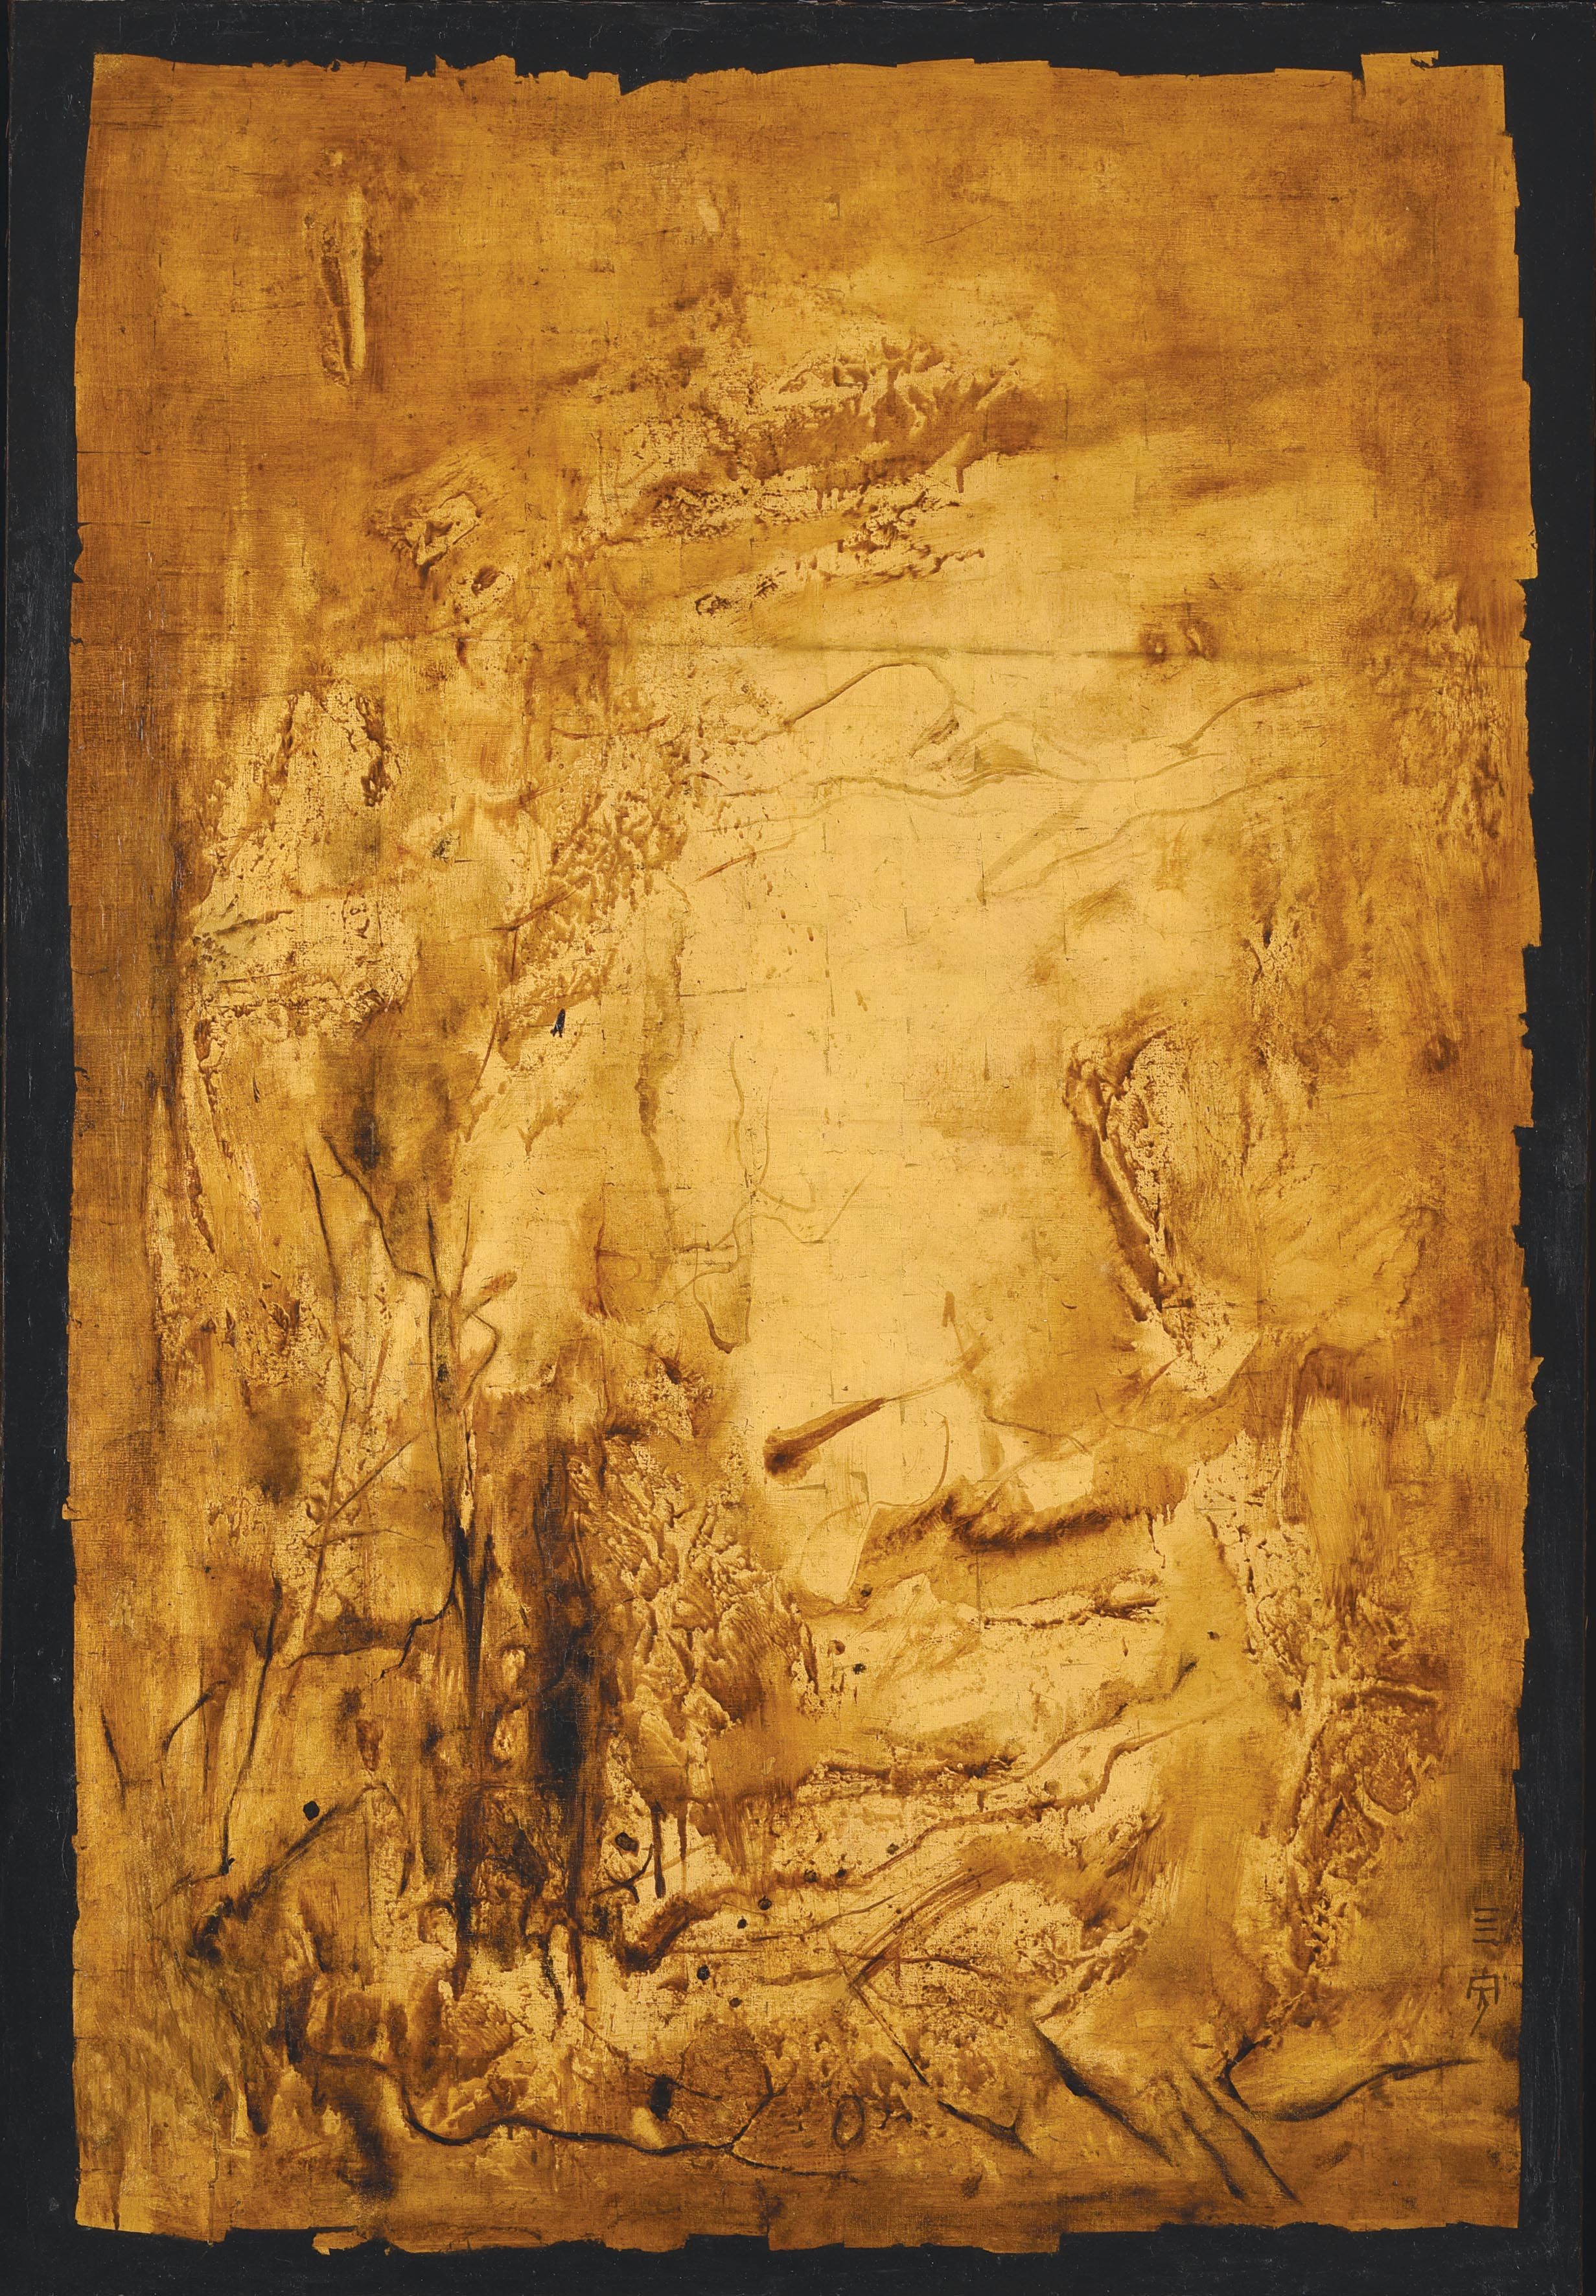 Cheong Soo Pieng, Nature, mixed media on canvas, 148 x 101.5 cm, 1965